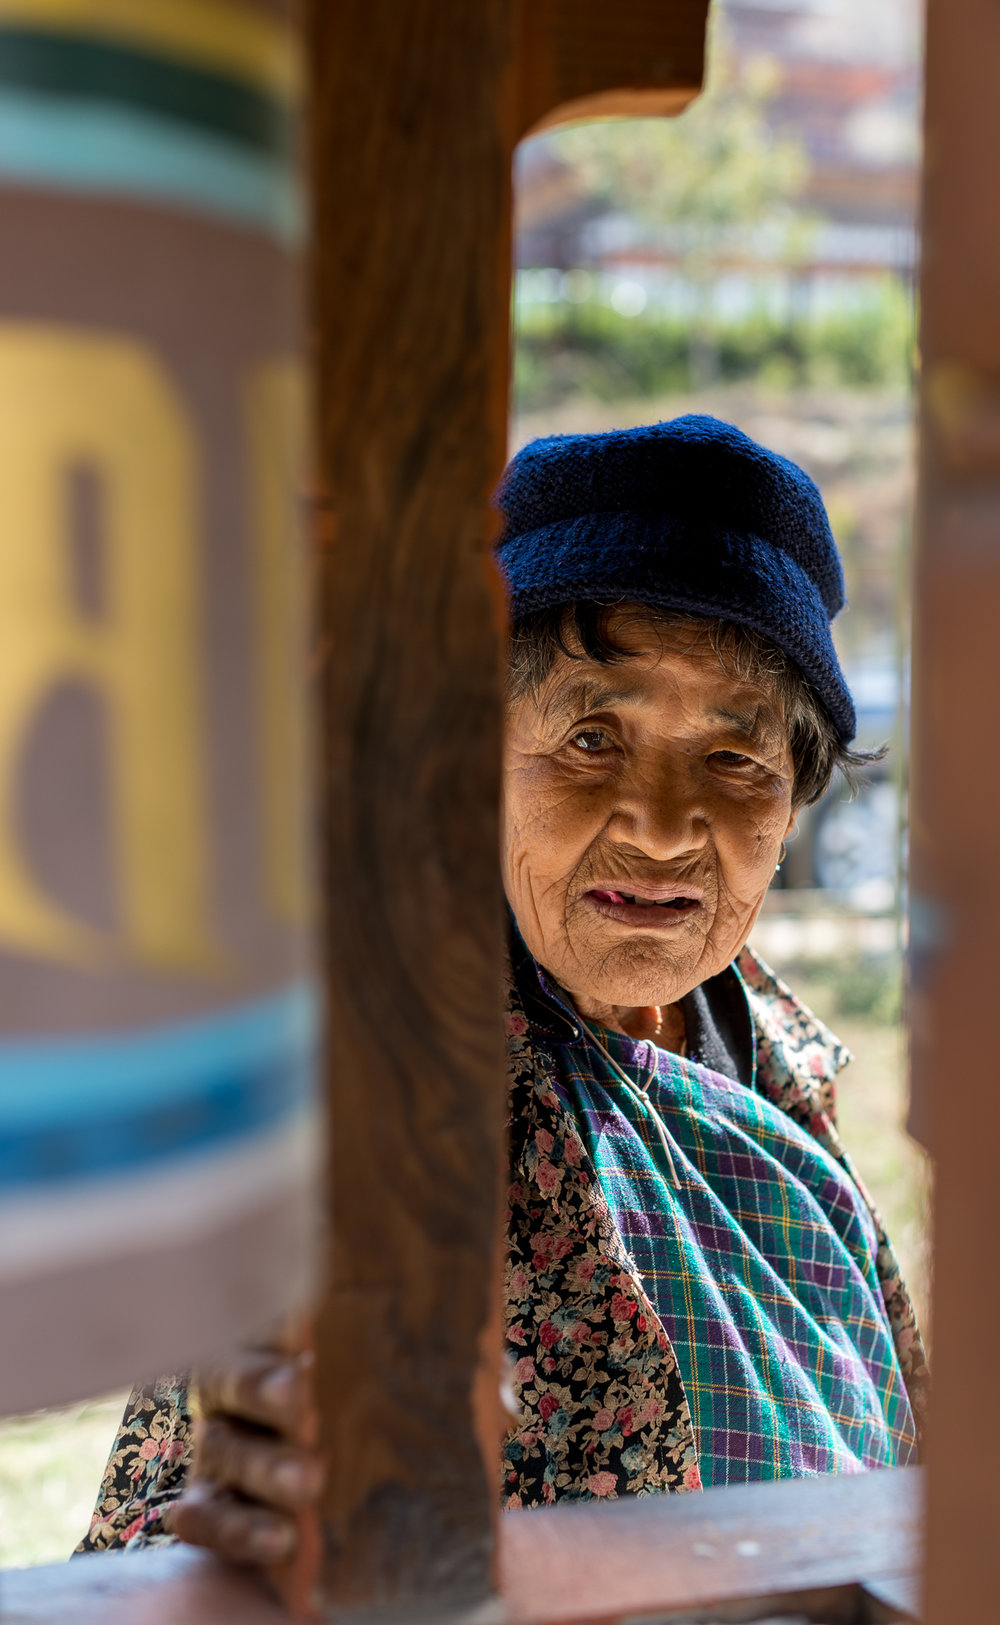 84 year old woman we met at the prayer wheels